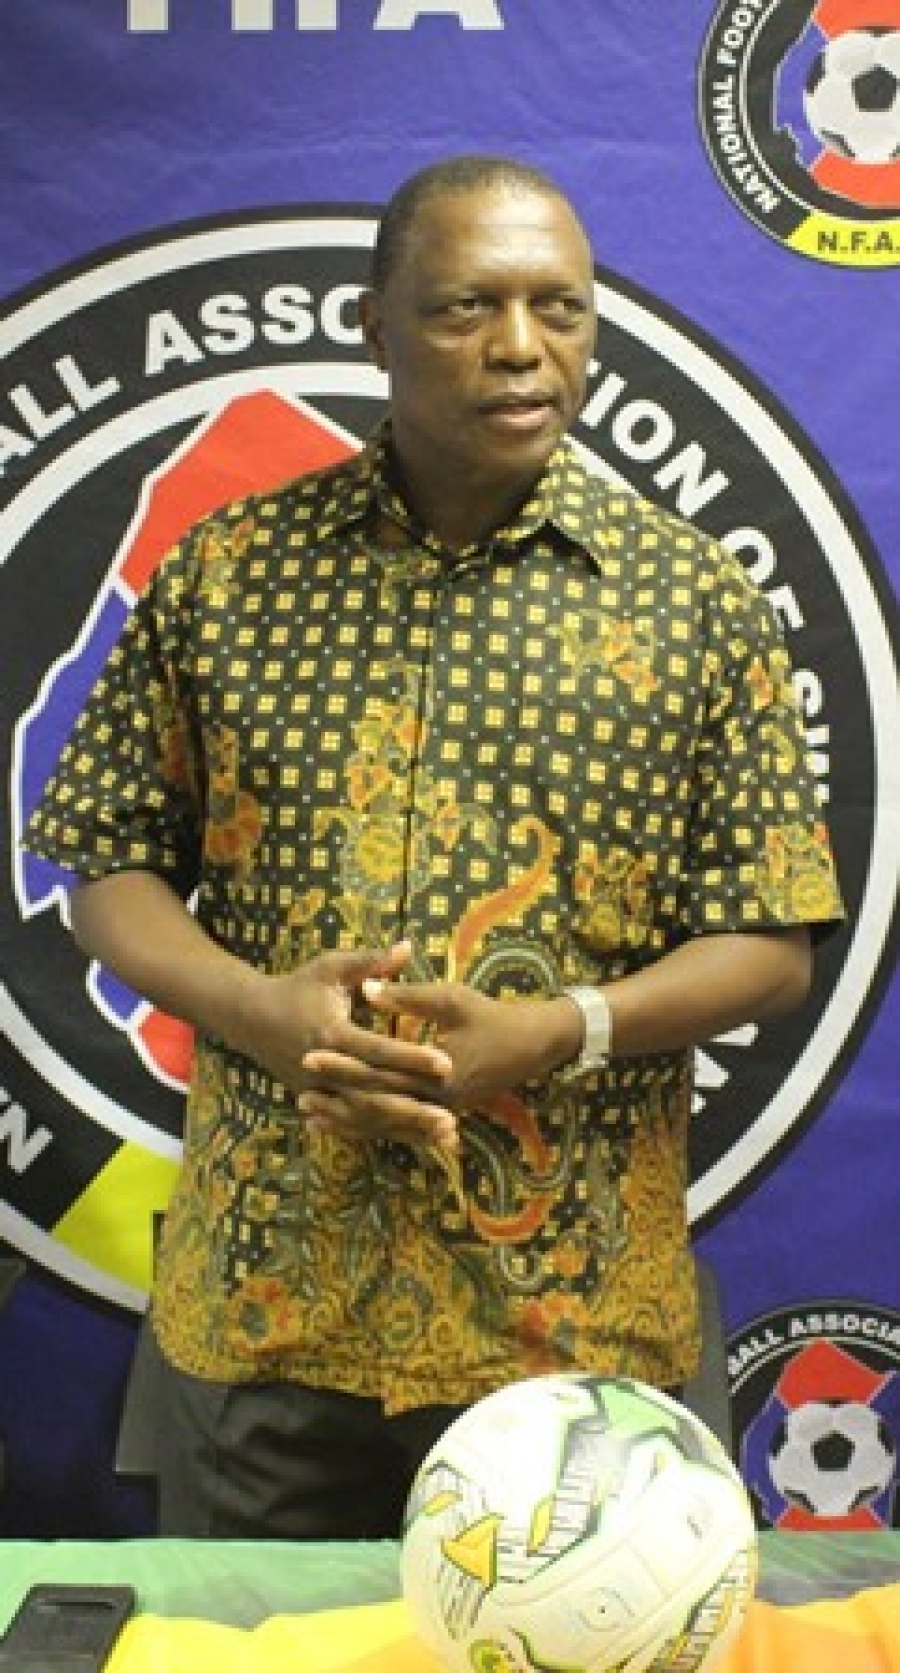 MINISTER OF SPORTS, CULTURE & YOUTH AFFAIRS BELIEVES YOUNG BAFFALOES CAN WIN IN CAPE TOWN